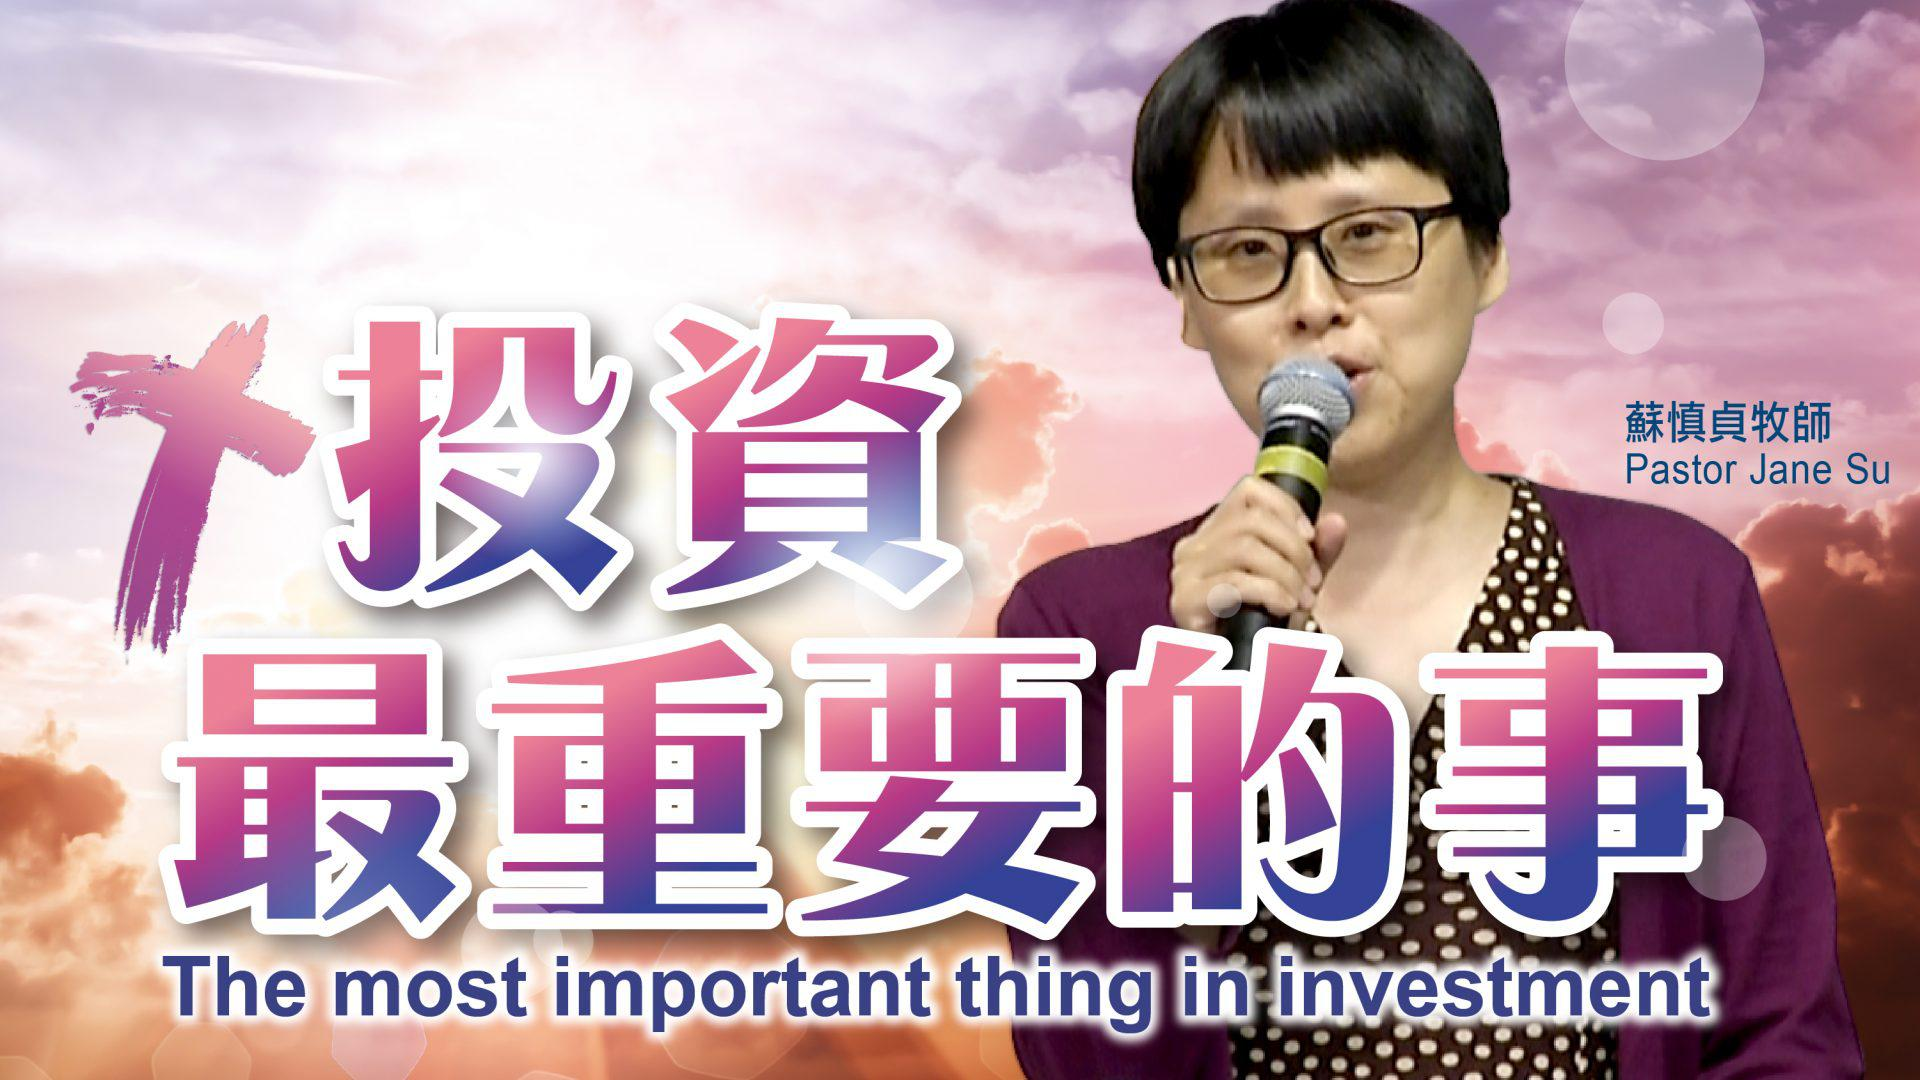 【主日信息】投資最重要的事The most important thing in investment/蘇慎貞牧師Pastor Jane Su_20200621